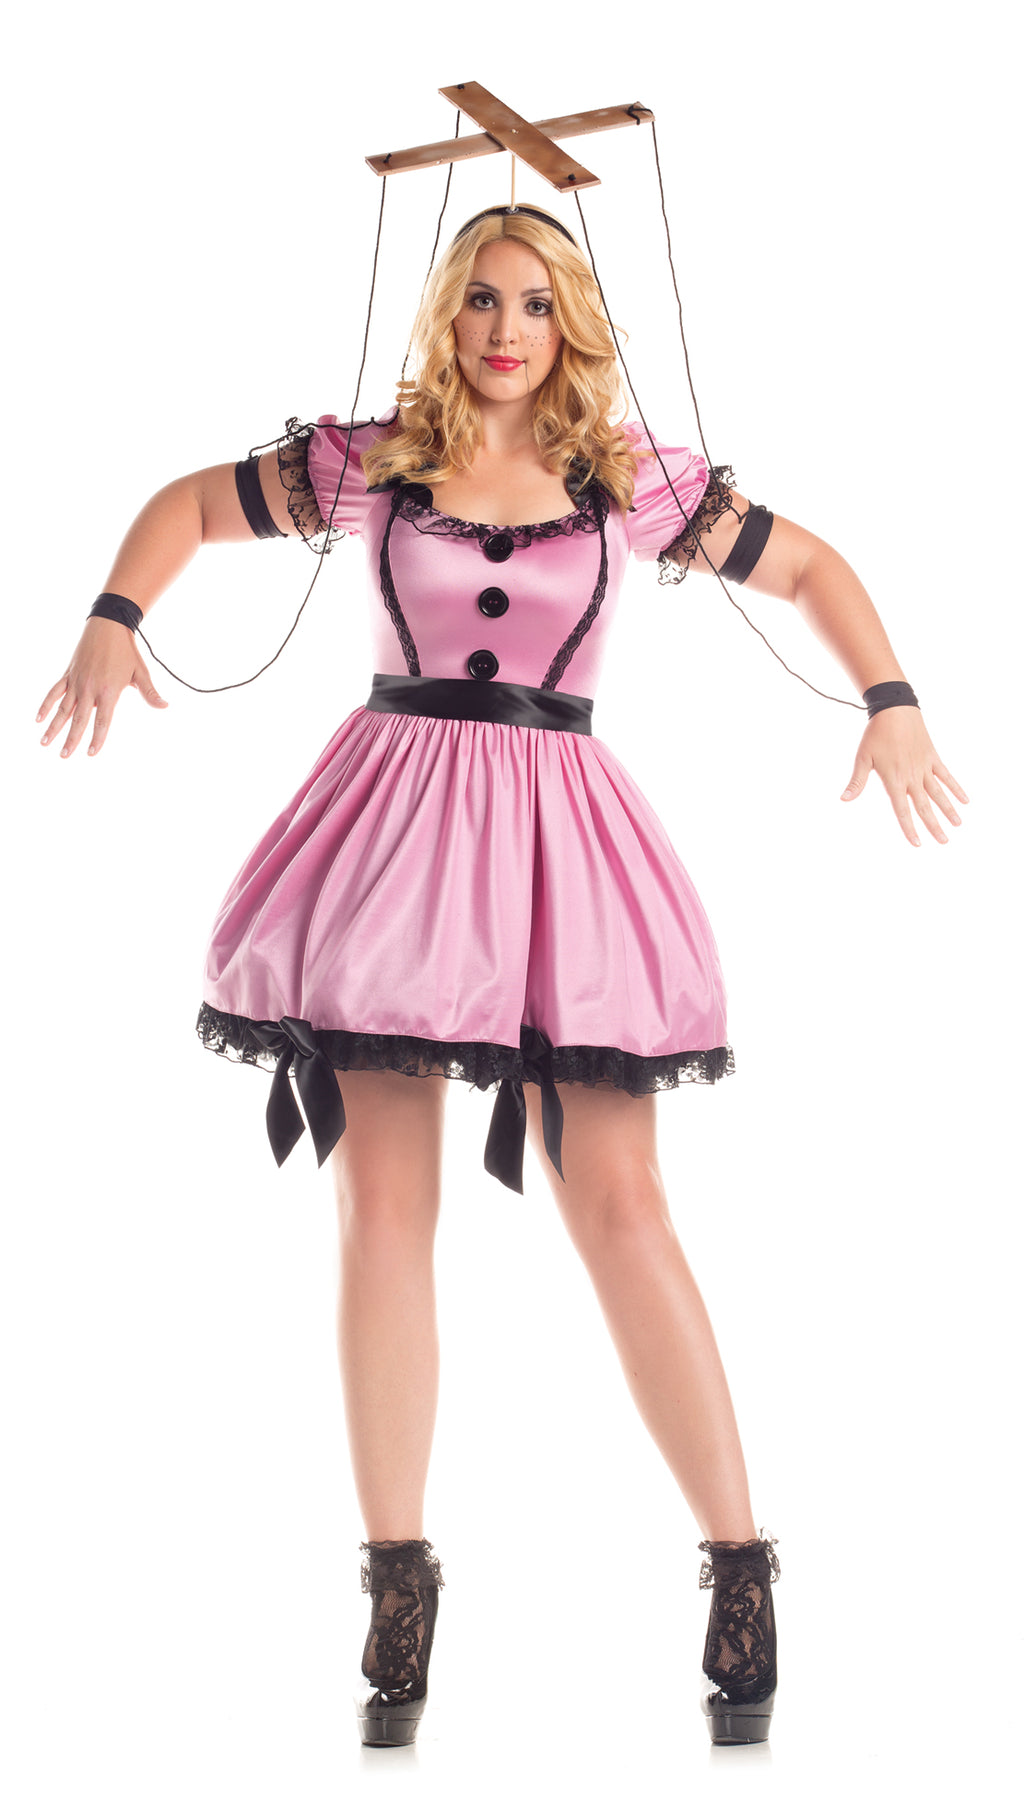 Party King Women's Pink Marionette Plus Size Costume Womens Adult Sized Costumes - Nastassy